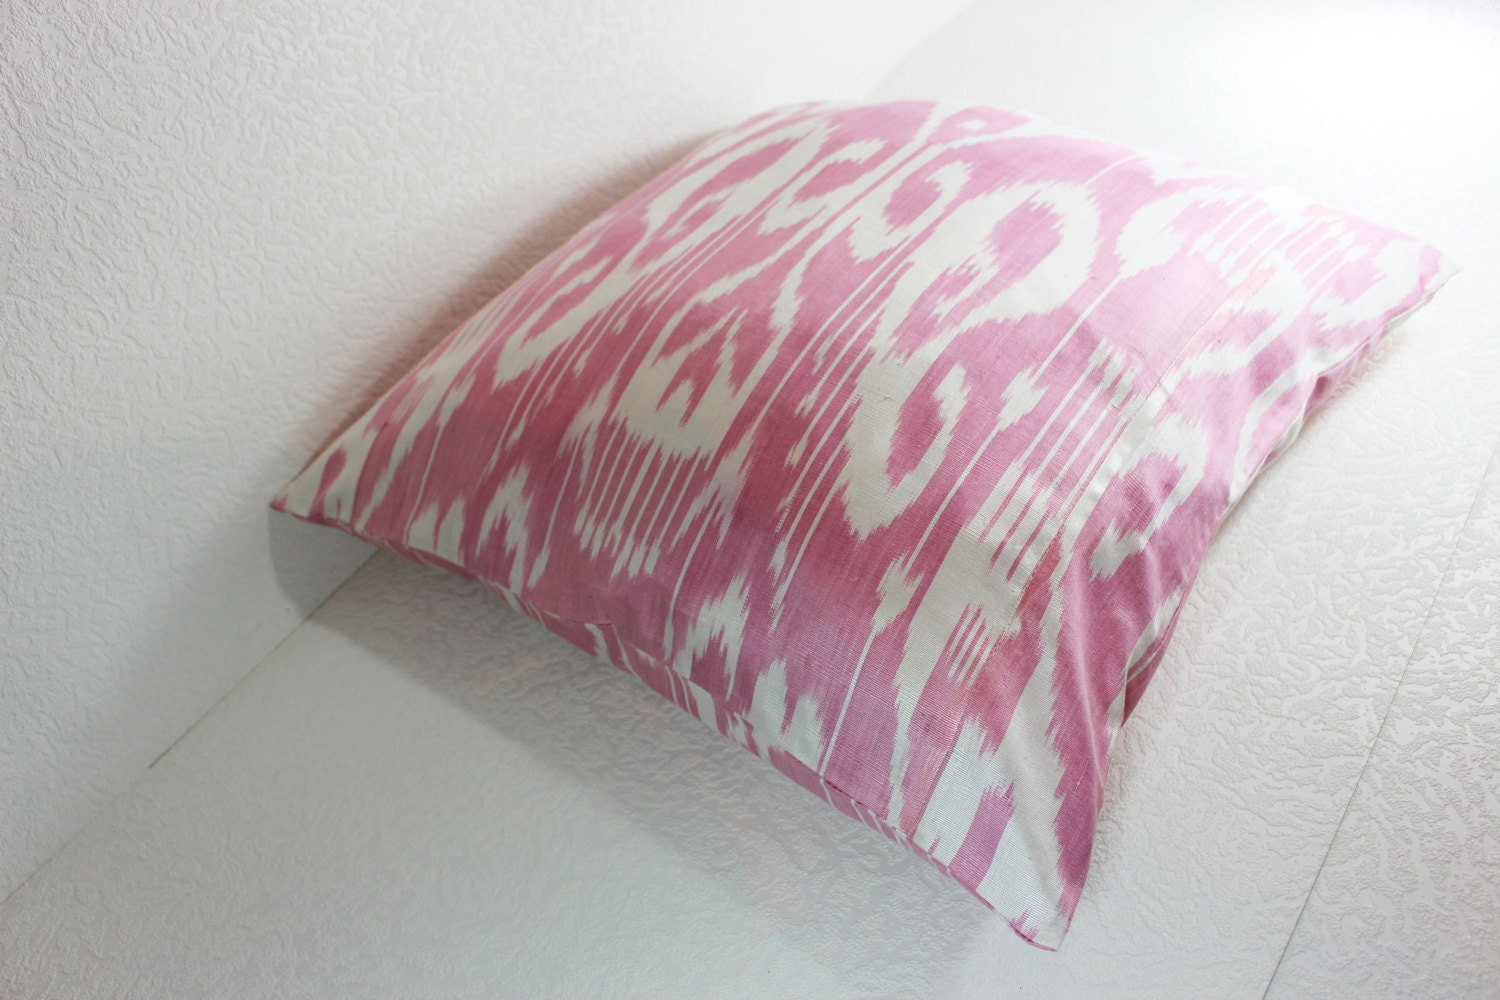 Handmade Ikat Throw Pillows : Ikat Pillow, Handmade Ikat Pillow Cover S114, Ikat throw pillows, Designer pillows, Decorative ...